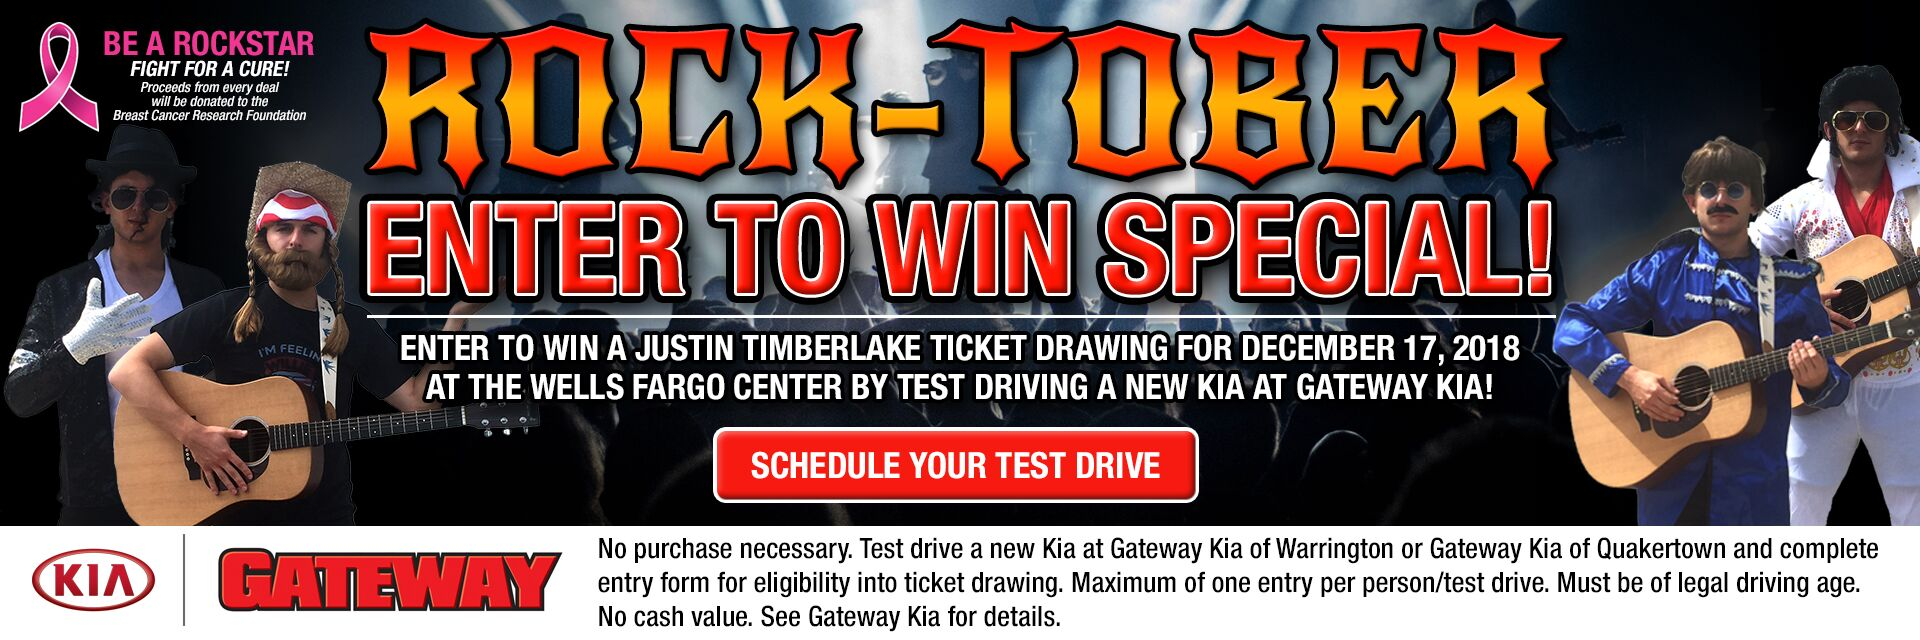 Win Justin Timberlake Tickets - No Purchase Necessary